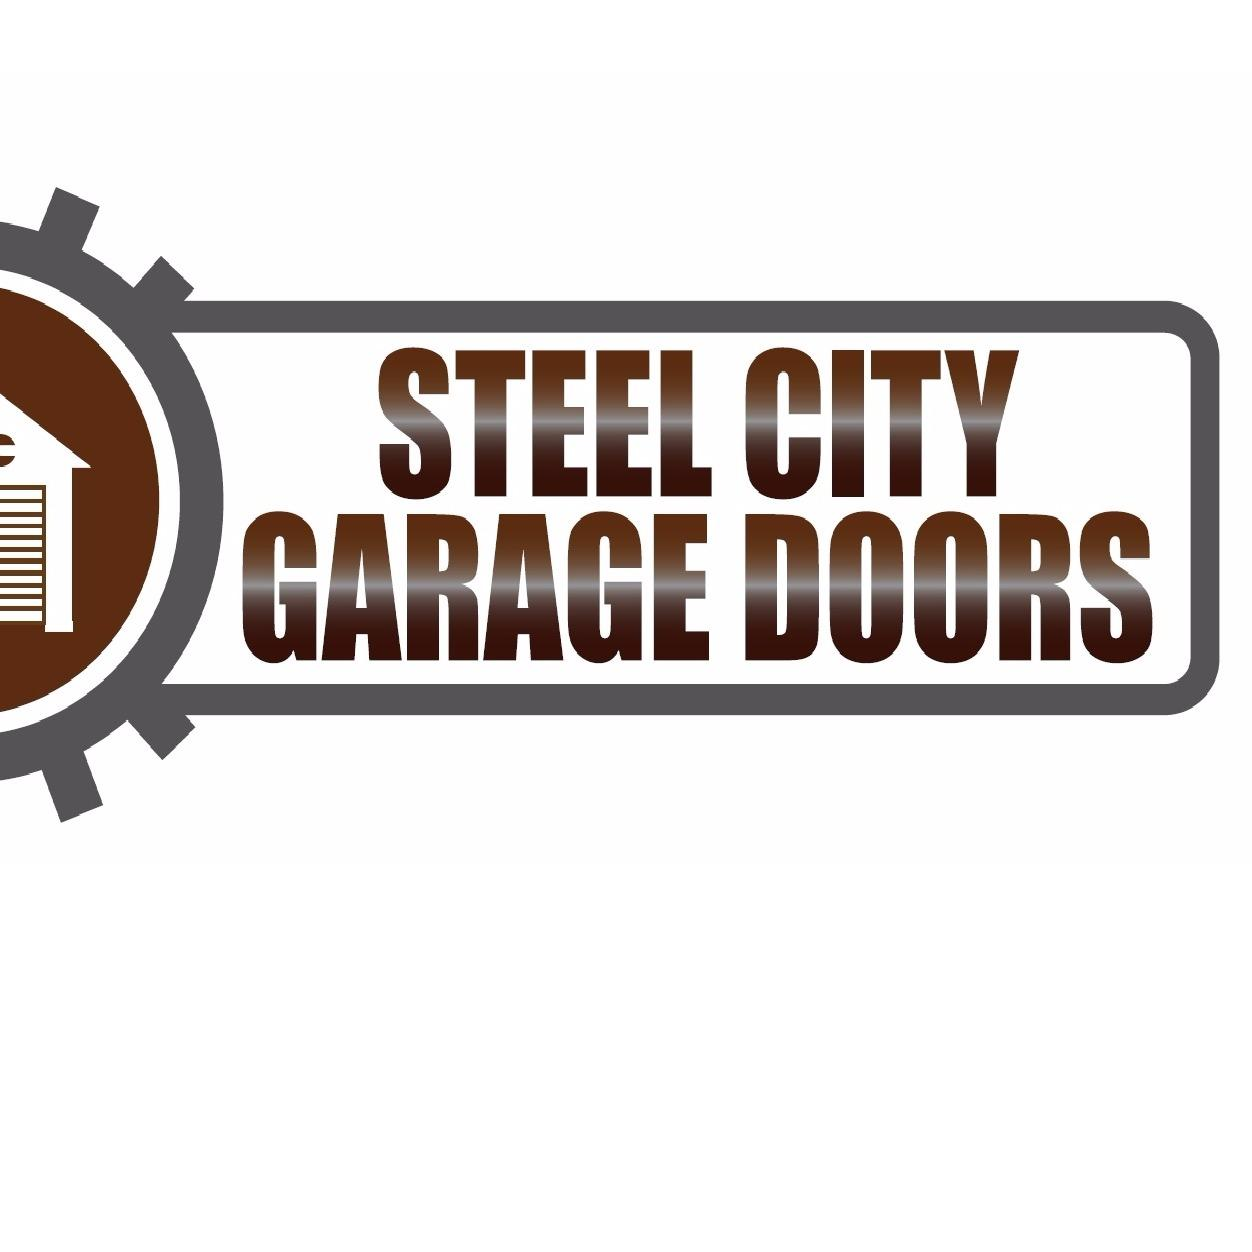 Steel City Garage Doors